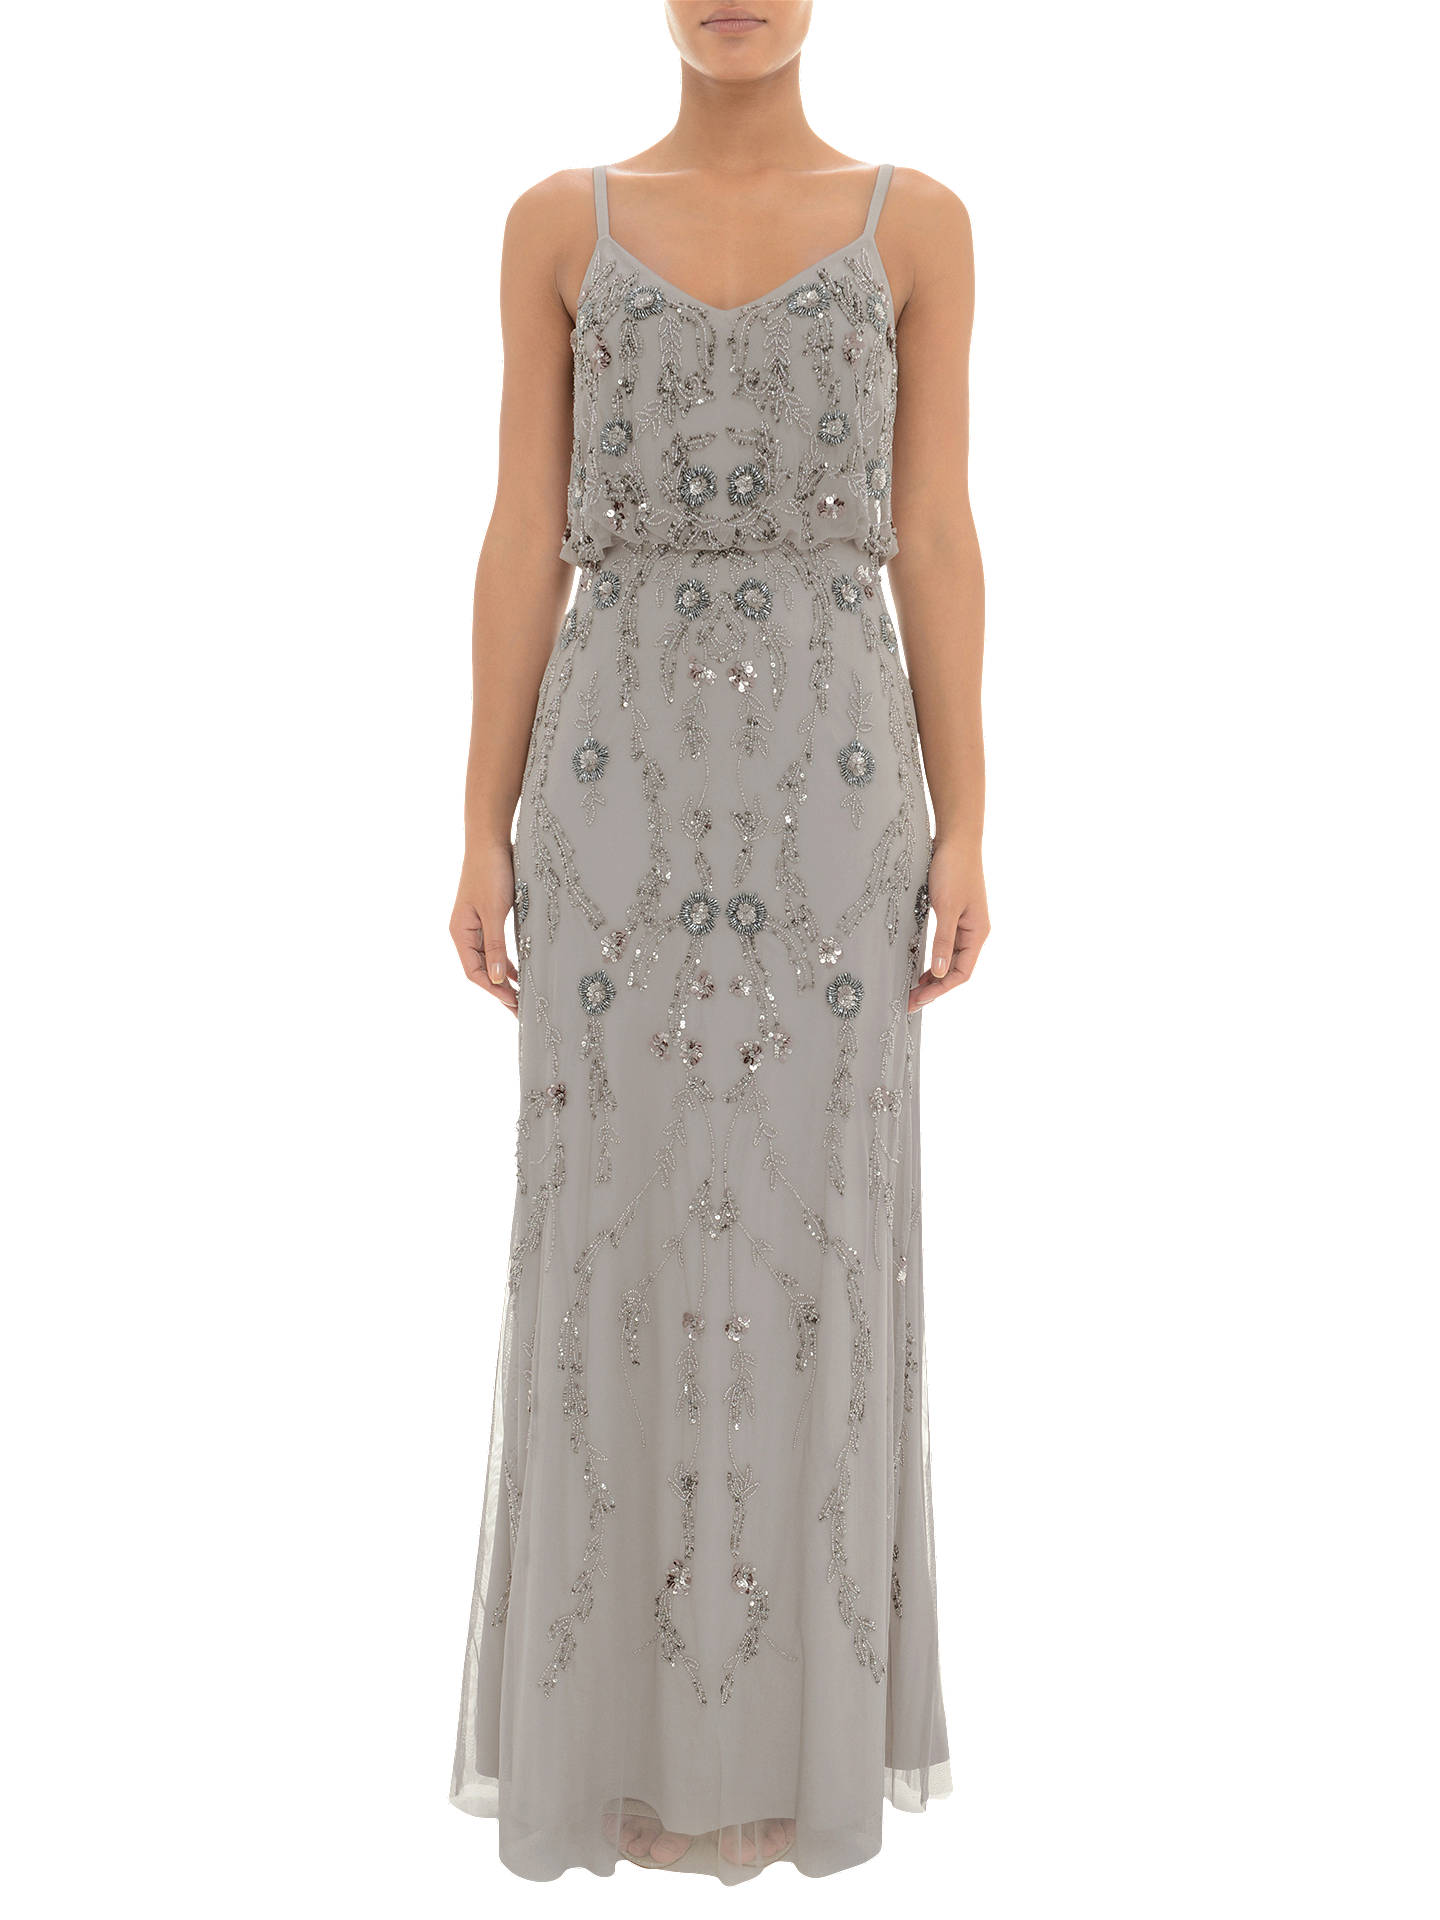 Adrianna Papell Floral Beaded Blouson Dress Platinum At John Lewis